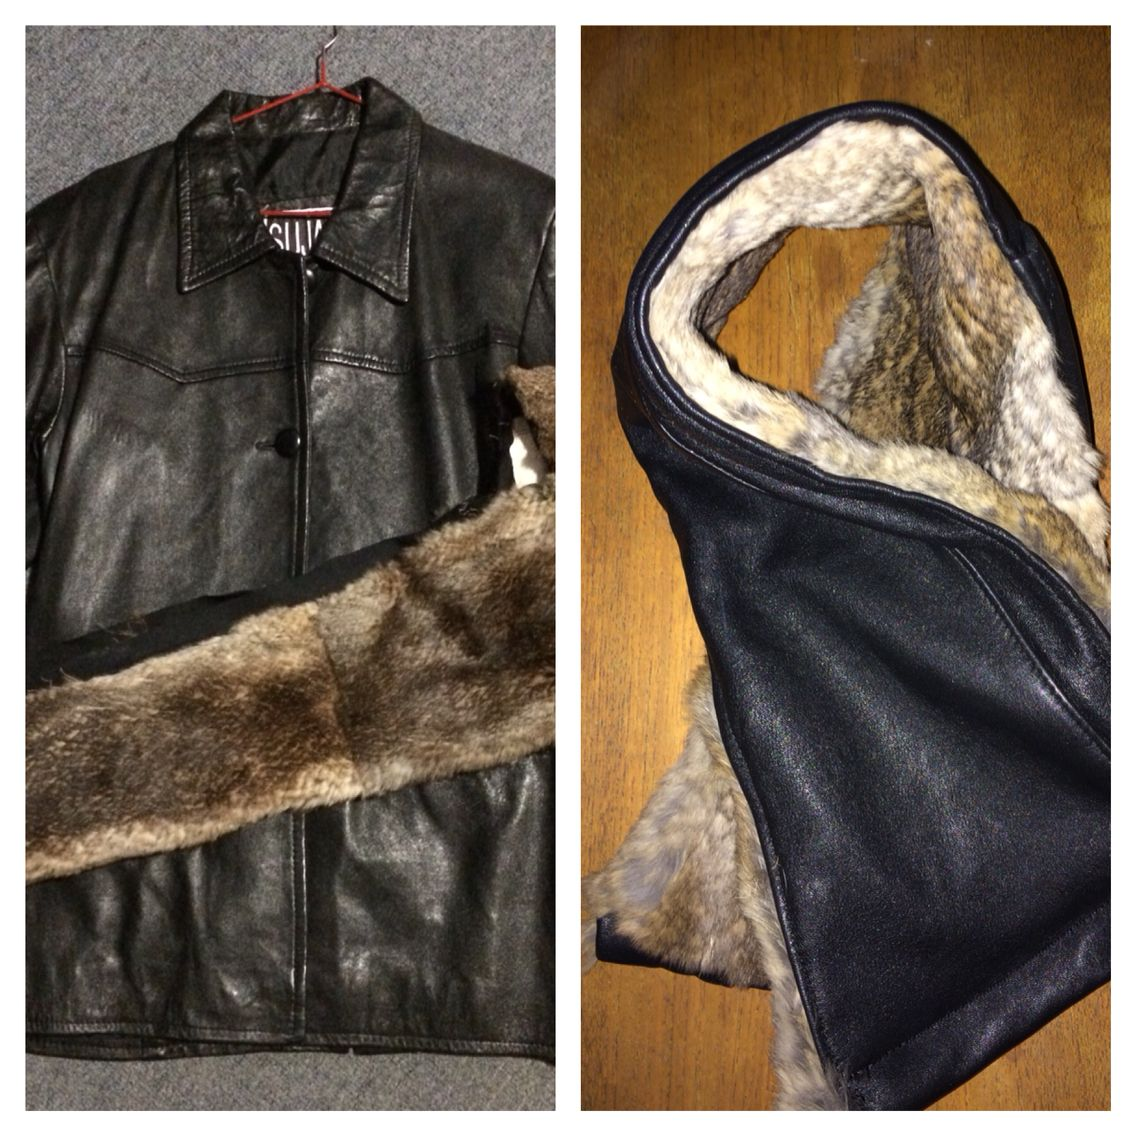 Recycled leather and fur into a super toasty winter scarf. Made in Tasmania by K8Created